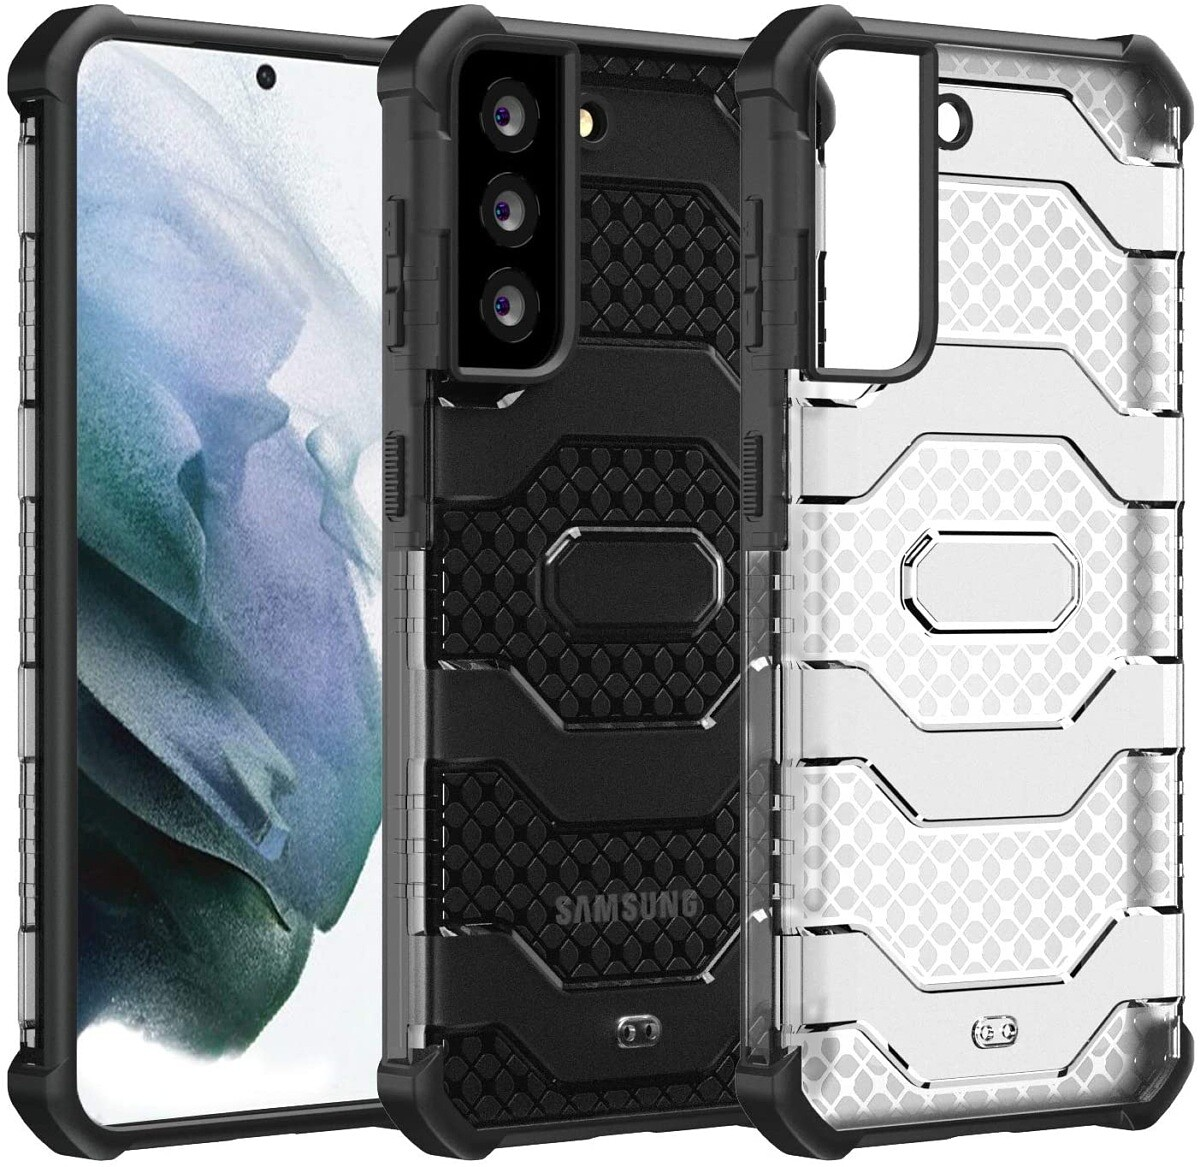 Restoo Rugged Case for Galaxy S21 Plus